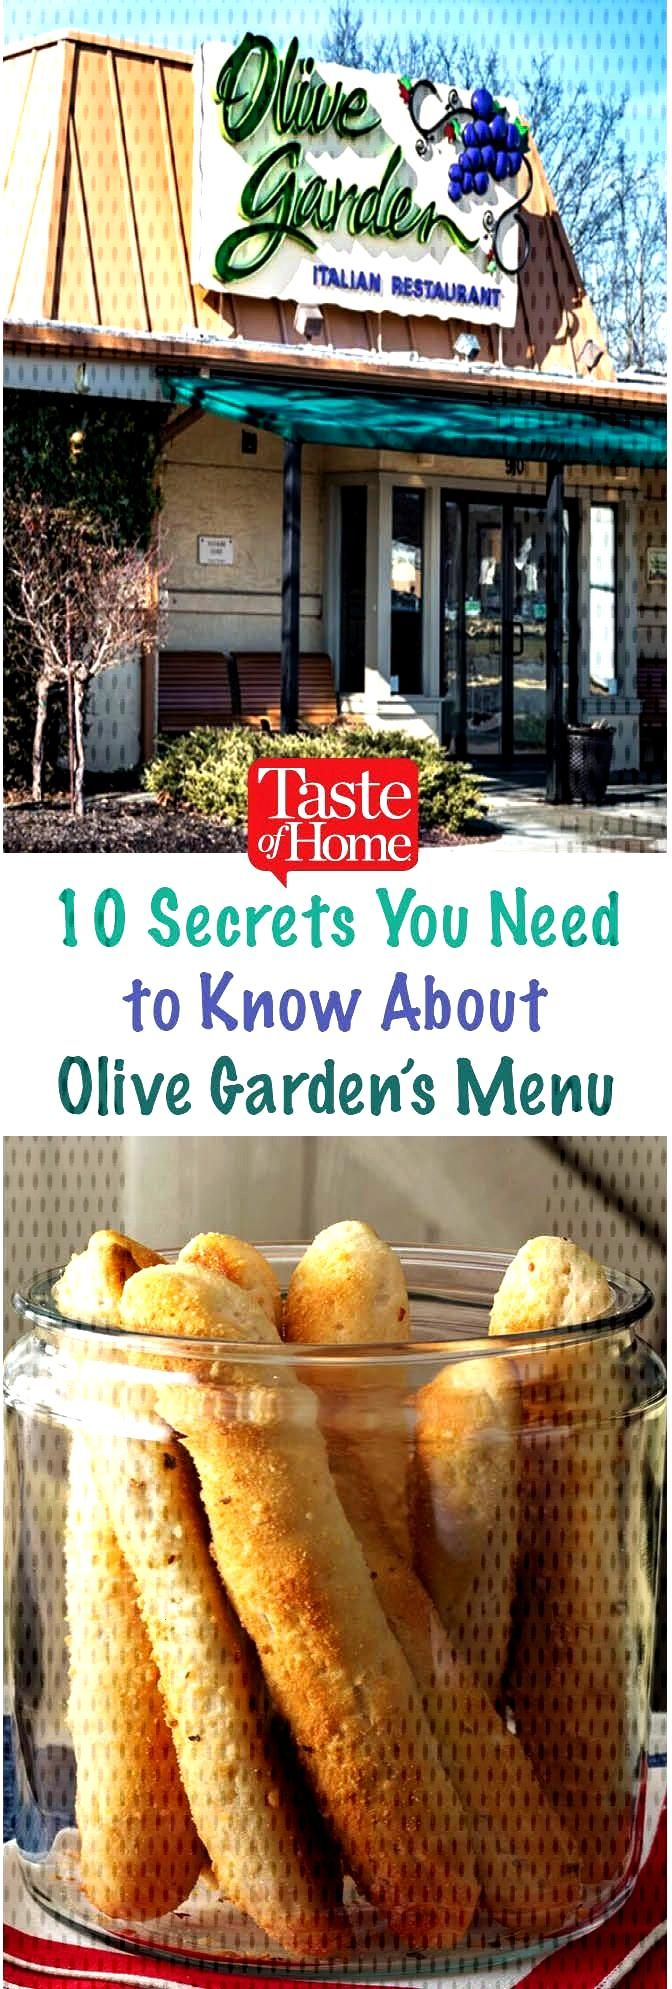 gardens secrets about olive need know menu you 10